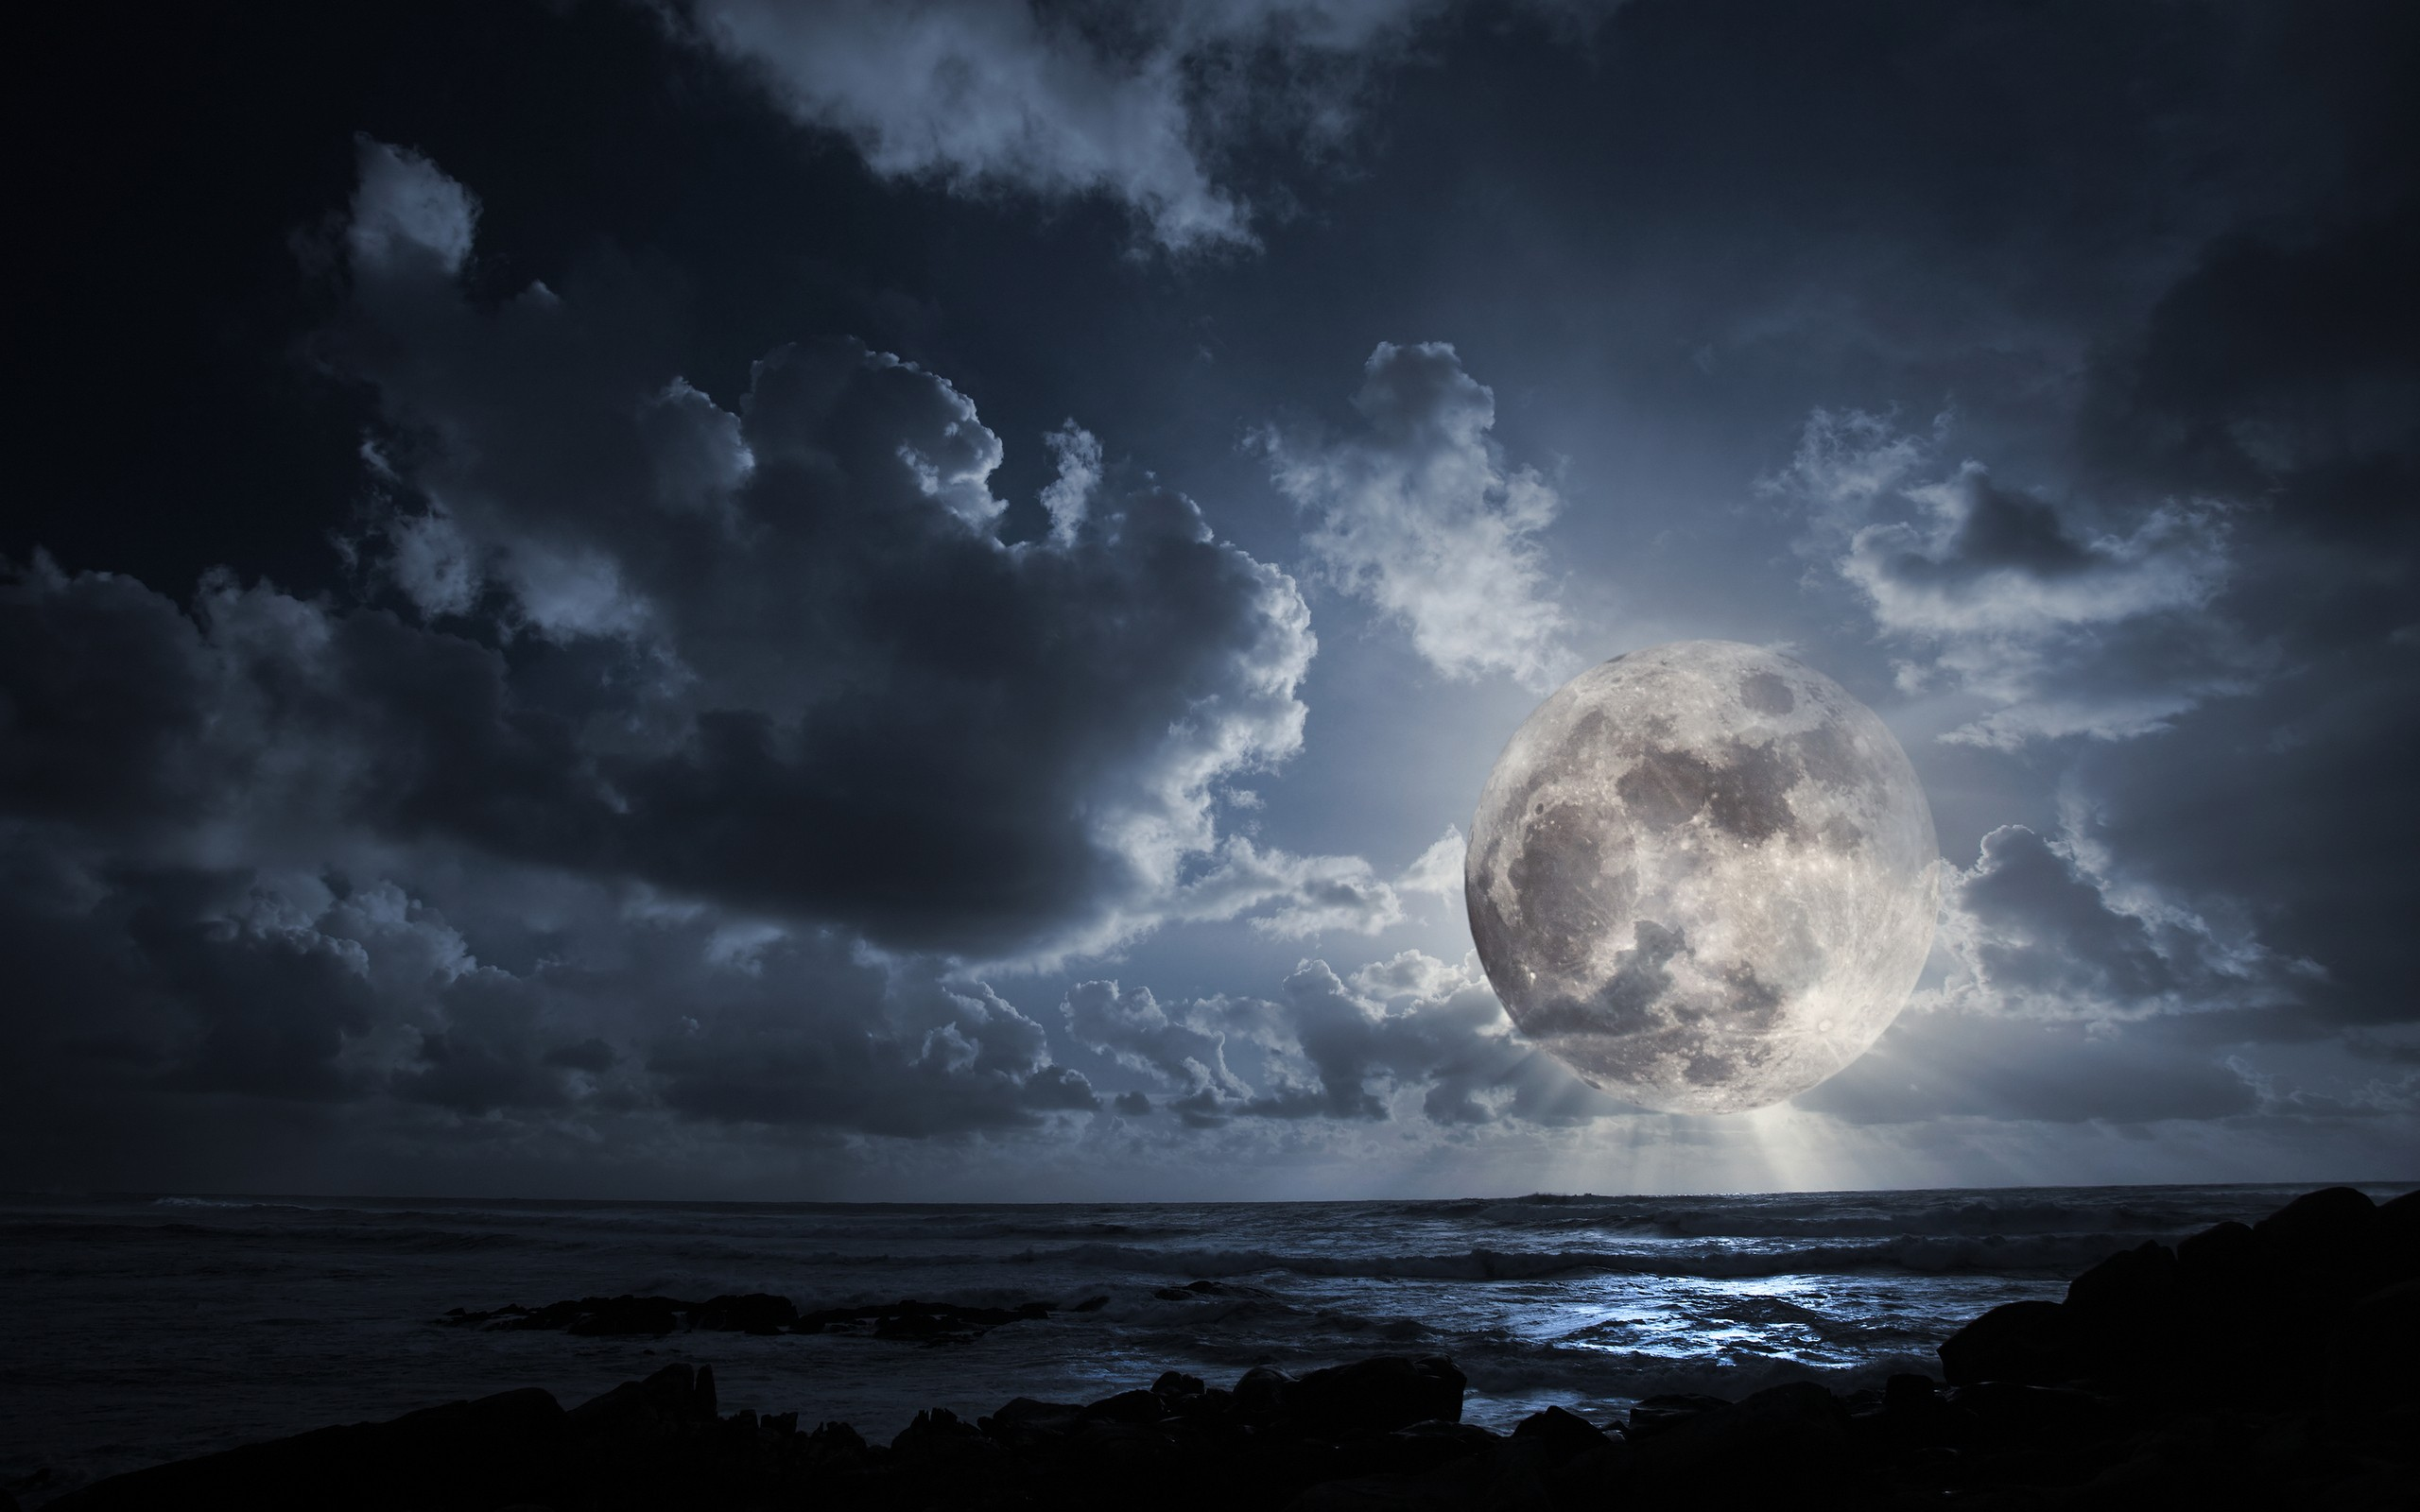 Landscapes outer space dark night moon wallpaper background 2560x1600